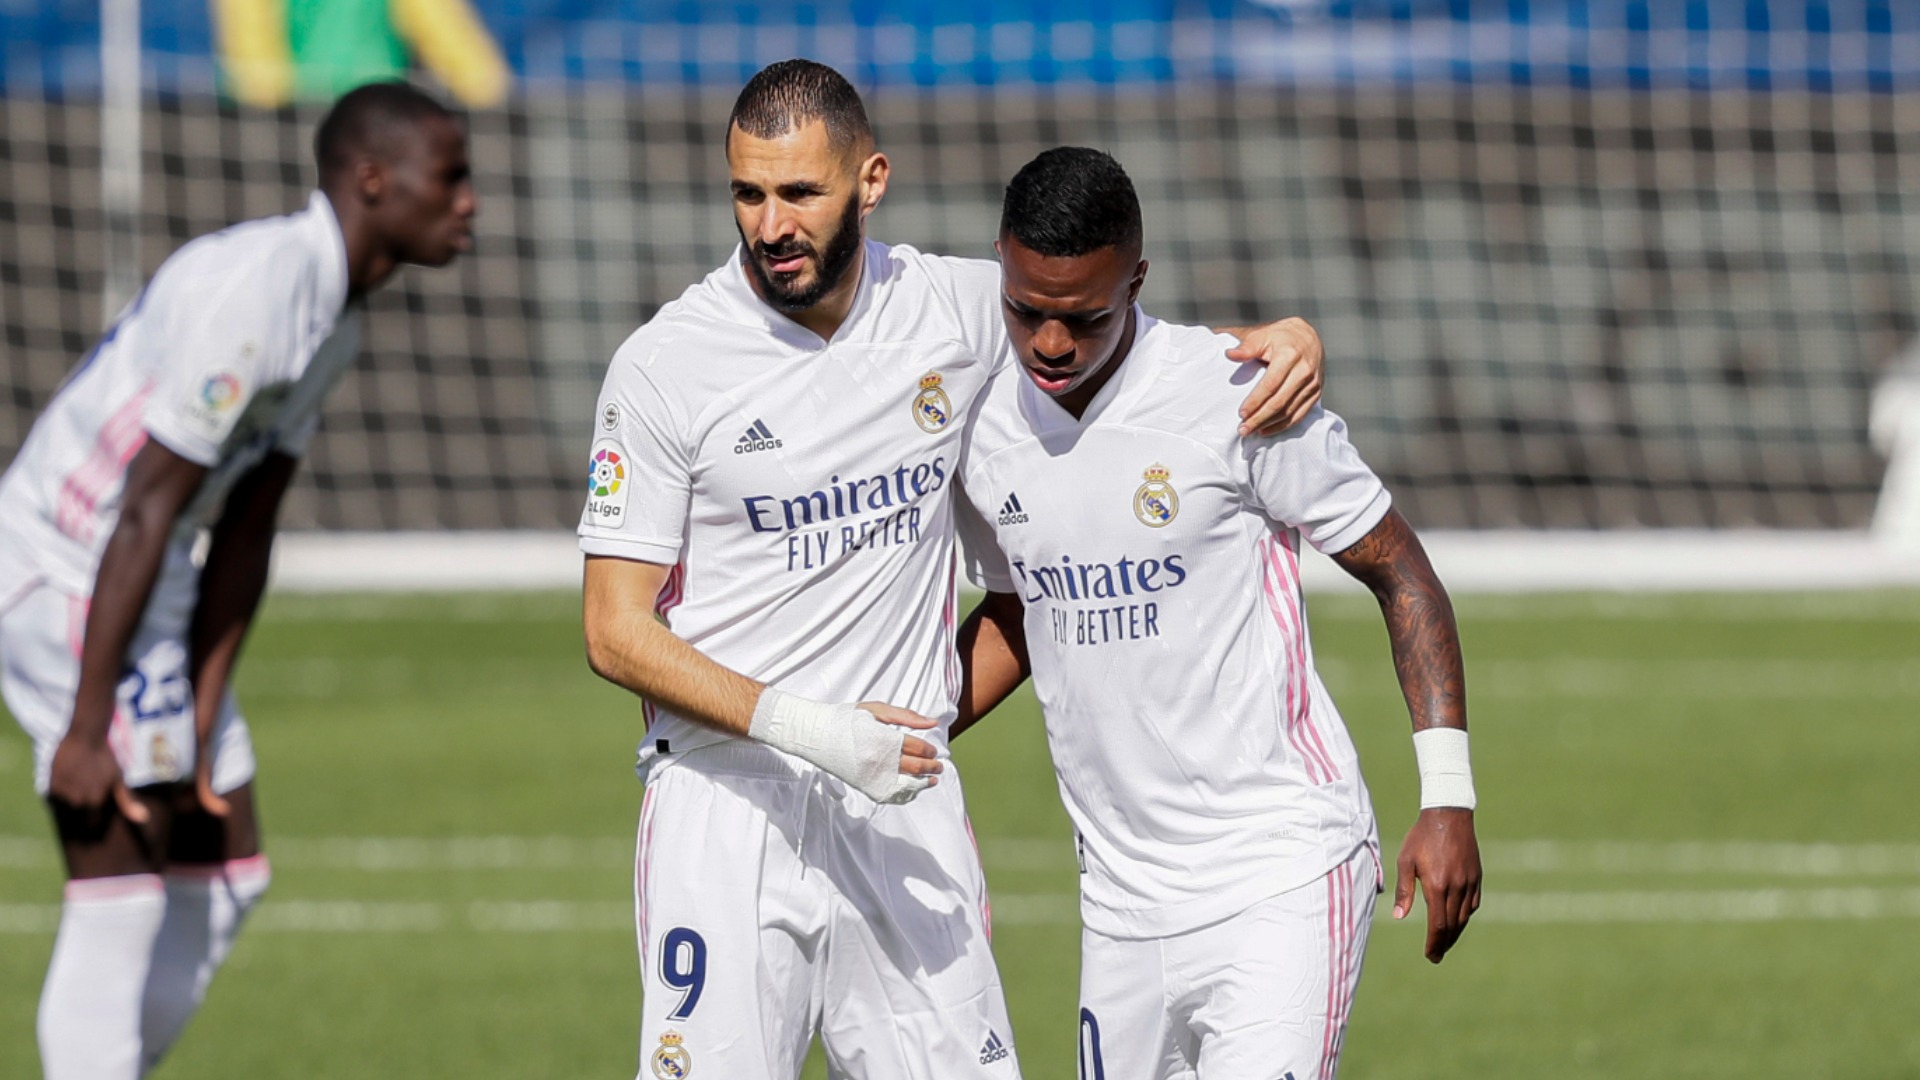 'They talked and it is perfect' - No issue between Benzema and Vinicius, insists Real Madrid manager Zidane